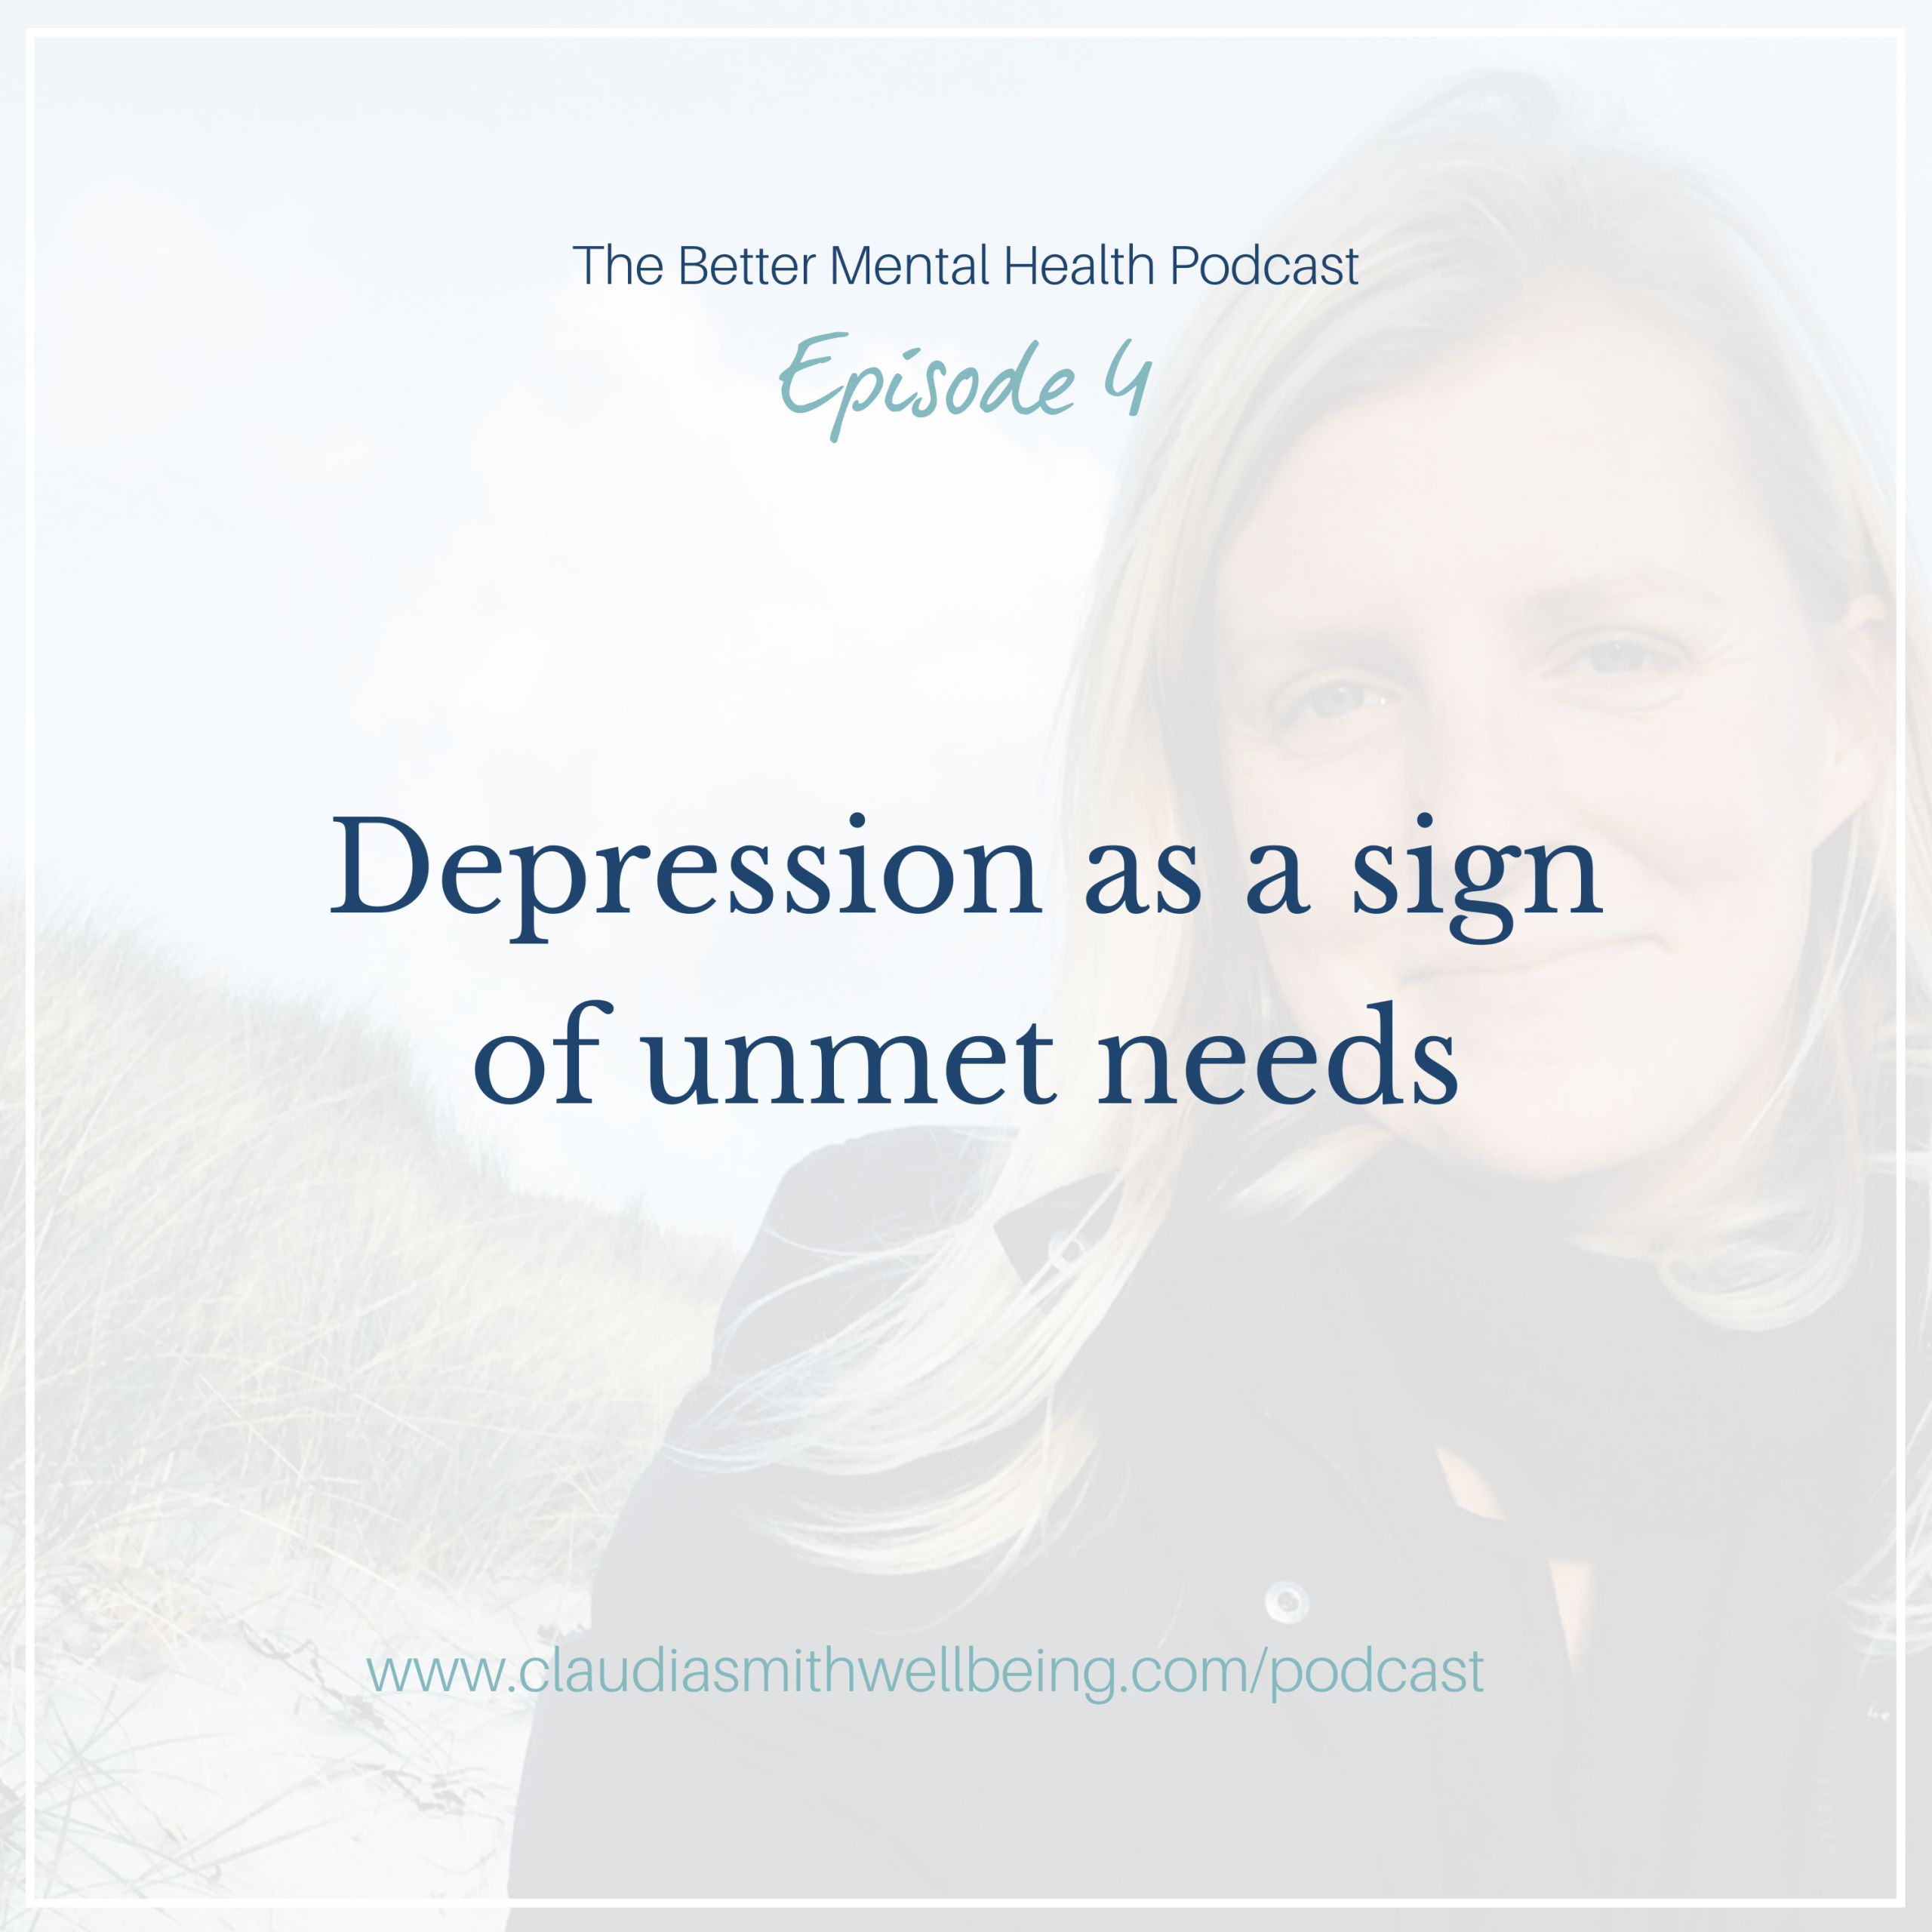 Depression as a sign of unmet needs